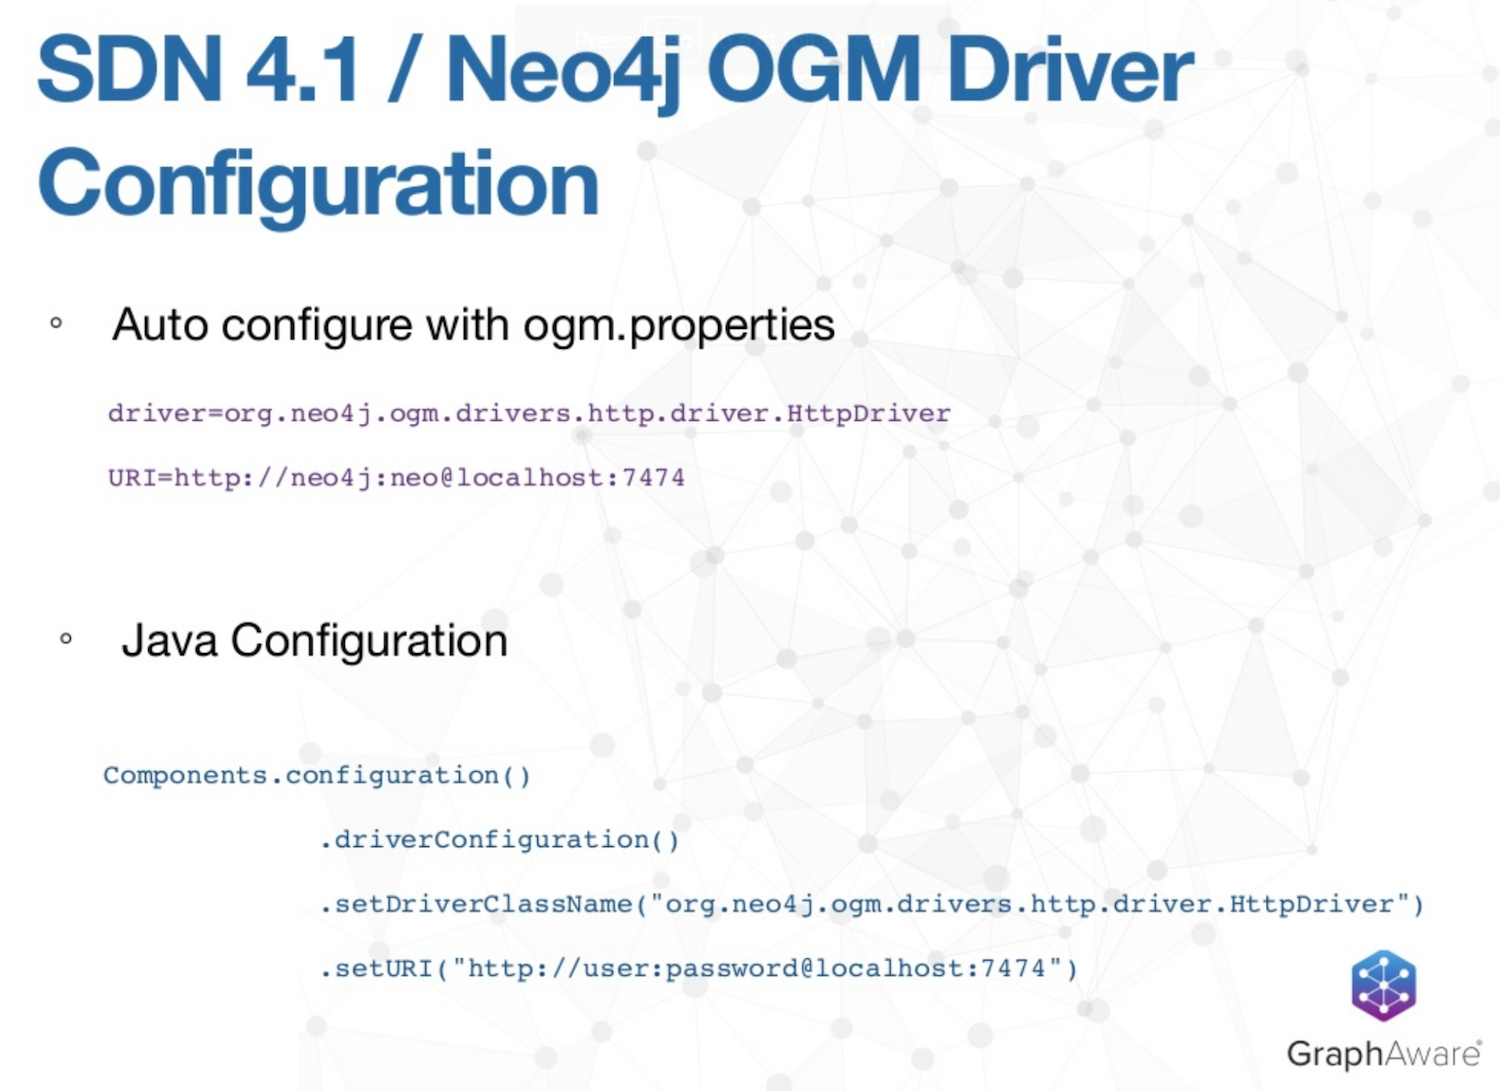 The driver configuration for Spring Data Neo4j 4.1 and the OGM